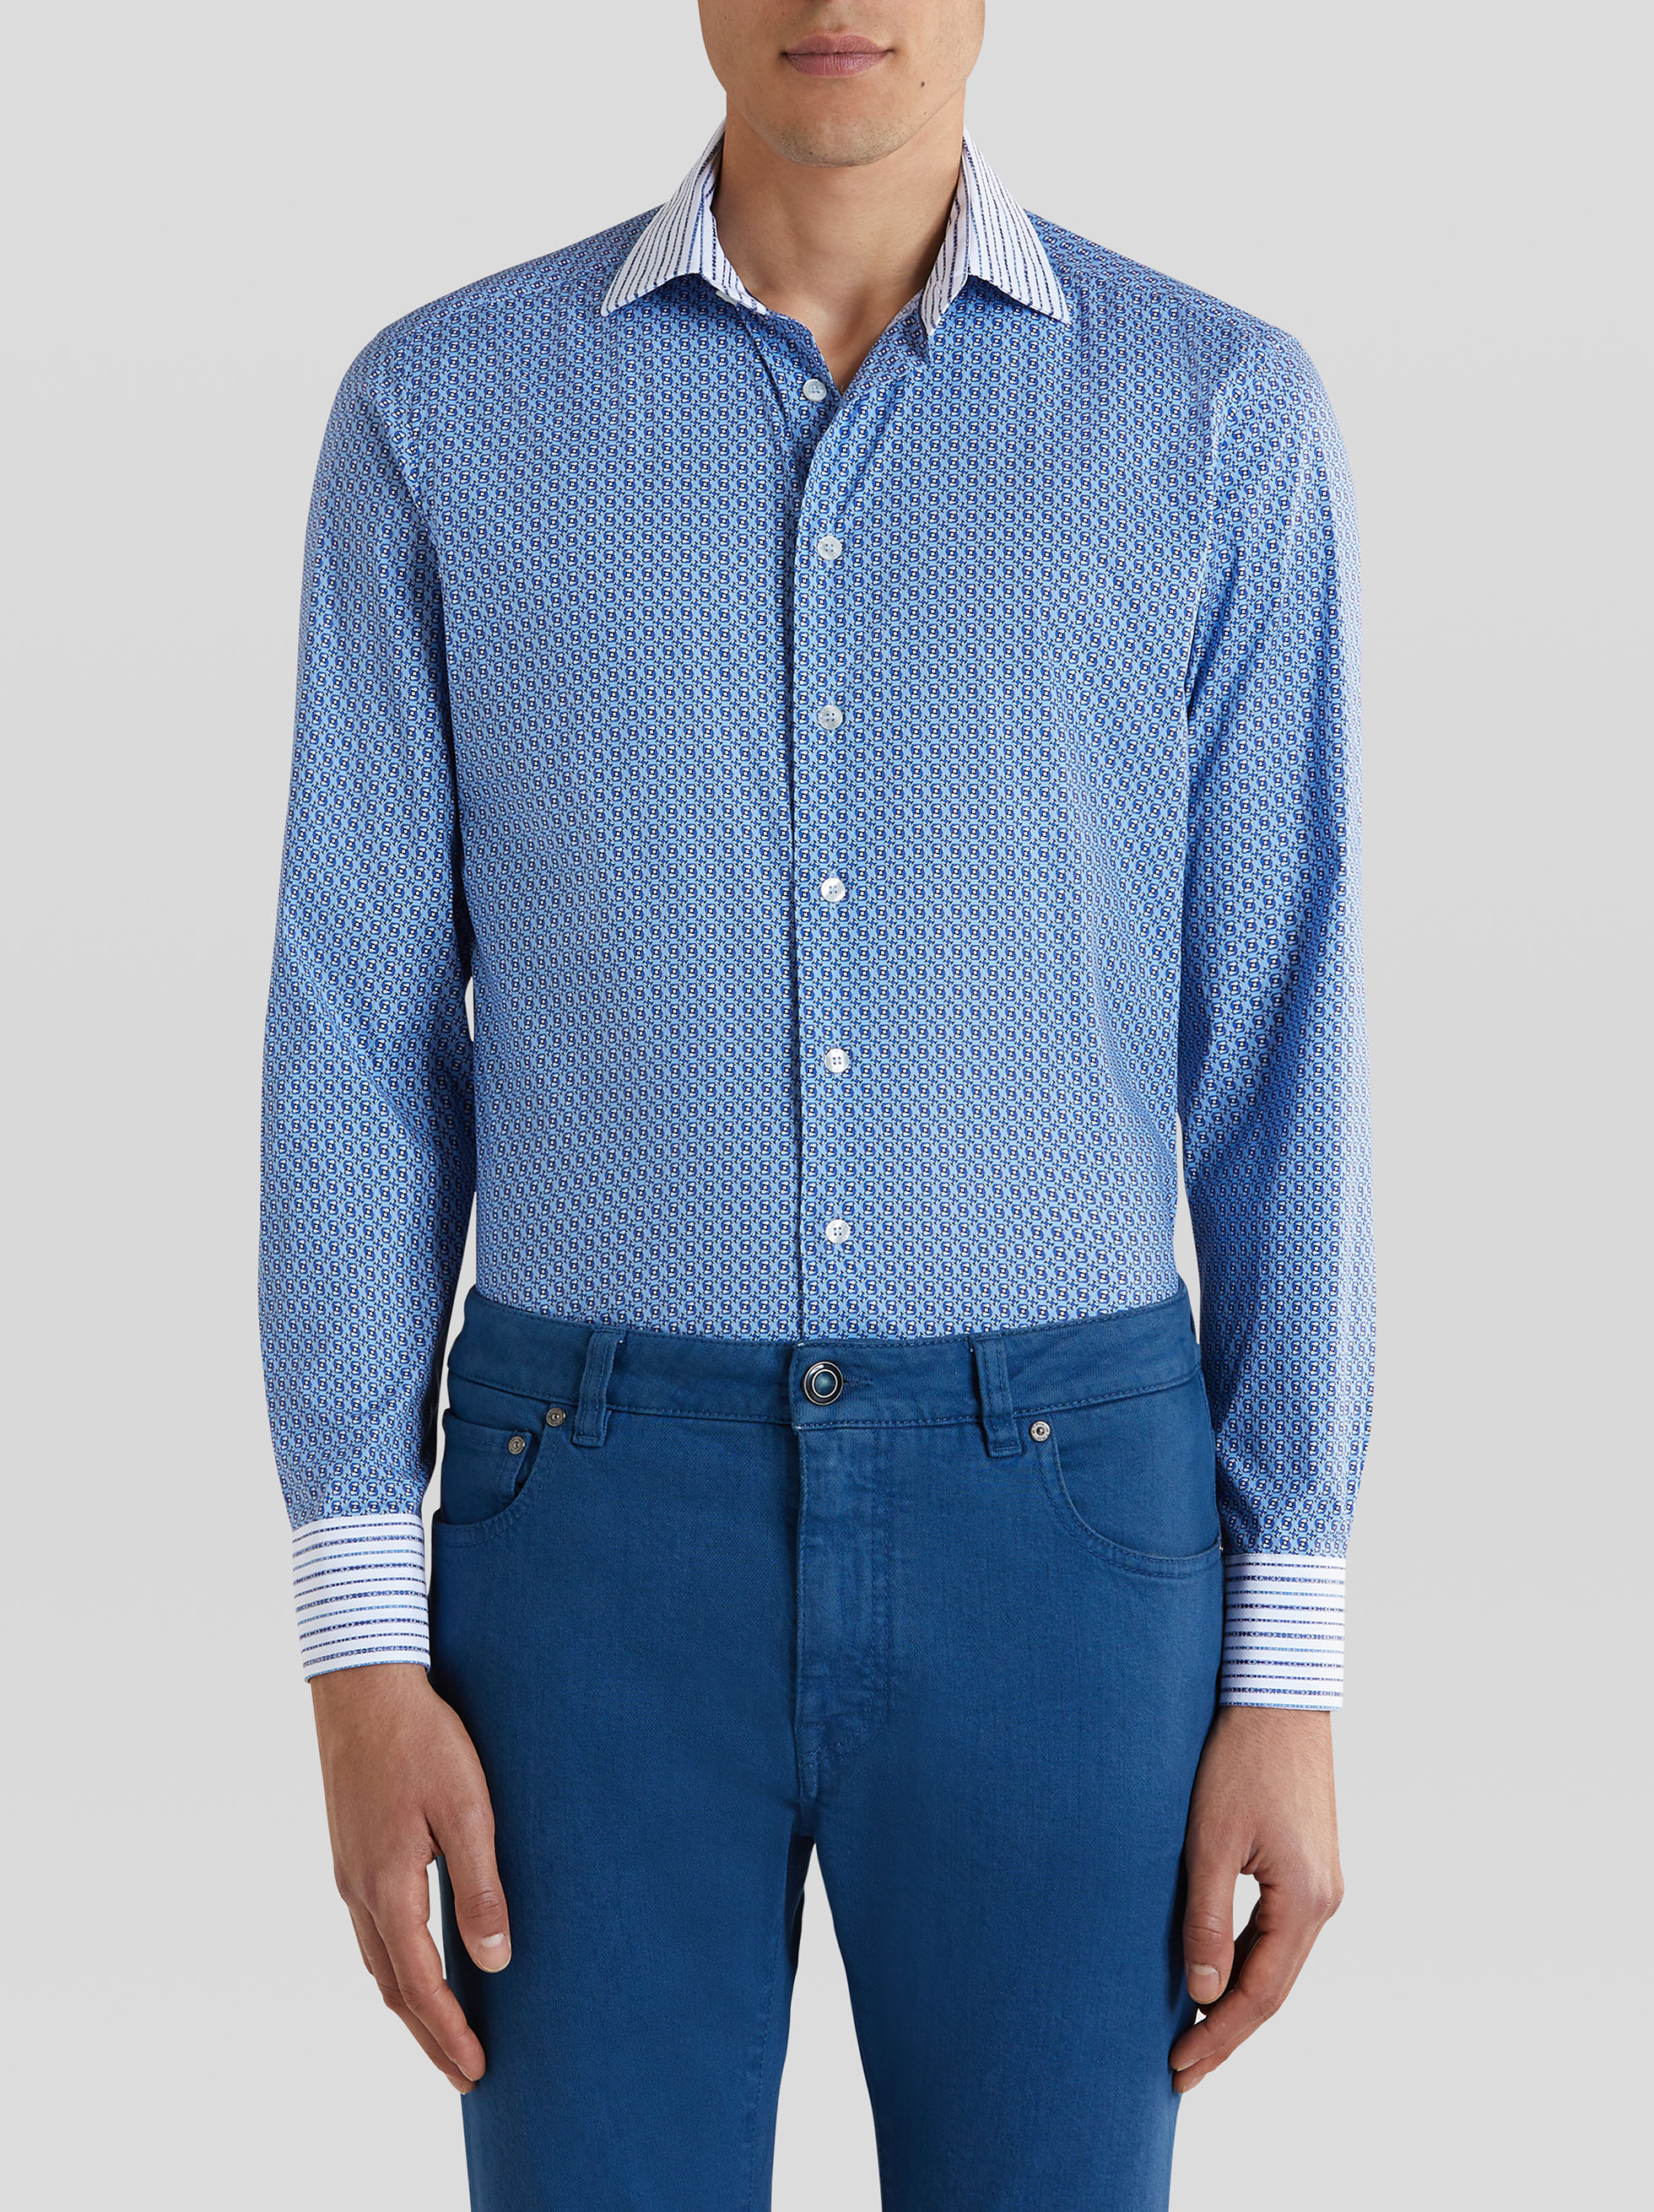 Etro Cottons GEOMETRIC PRINT DOUBLE FABRIC COTTON SHIRT